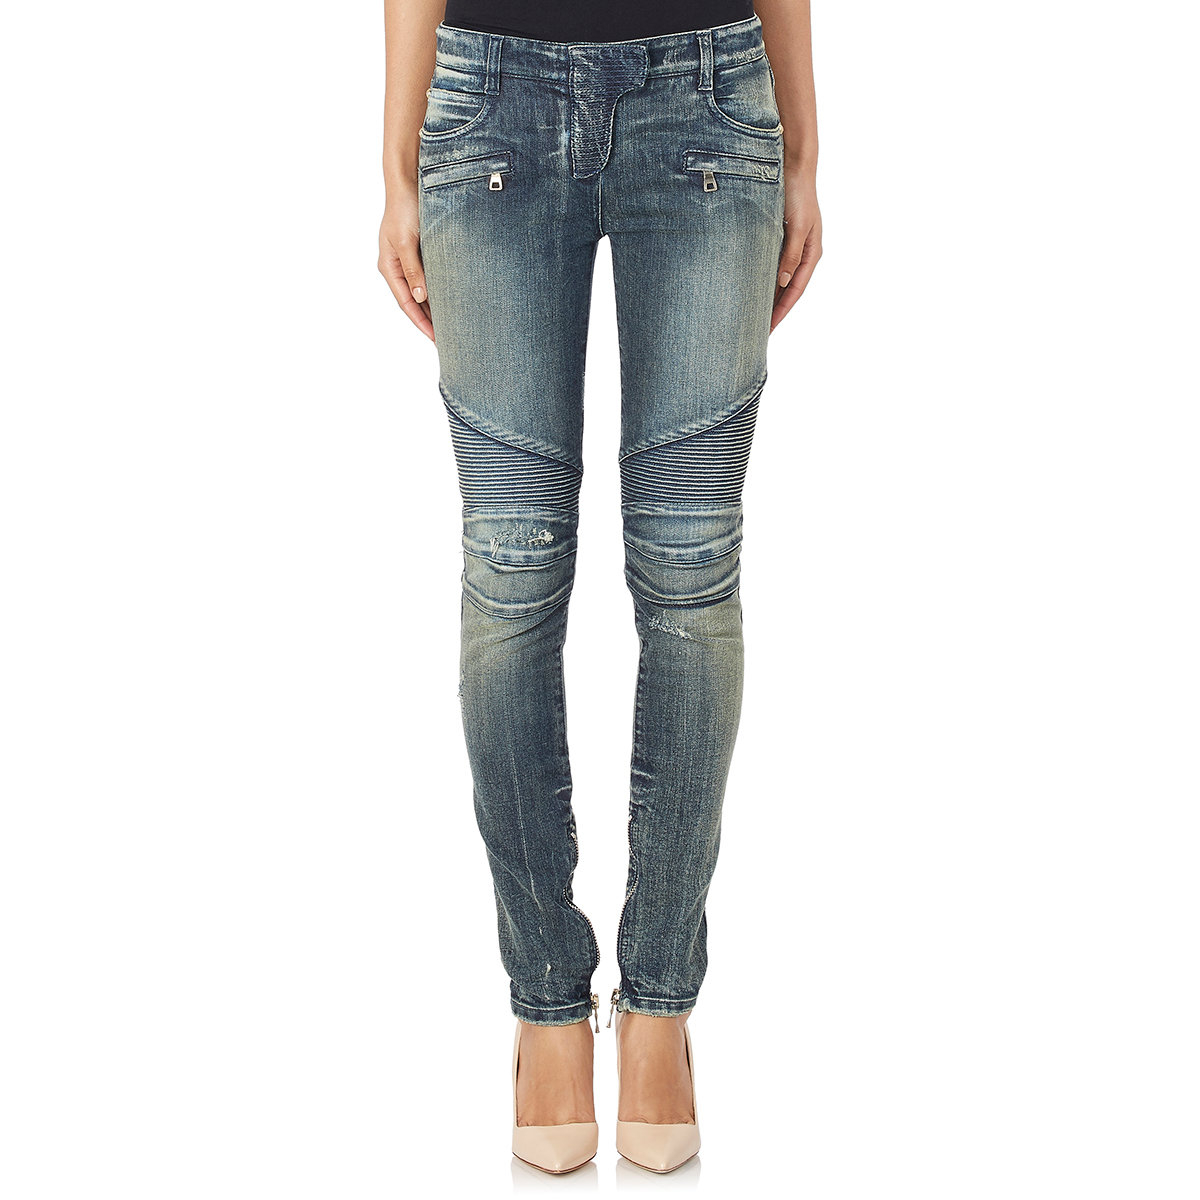 Shop eBay for great deals on Pierre Balmain Jeans for Women. You'll find new or used products in Pierre Balmain Jeans for Women on eBay. Free shipping on selected items.